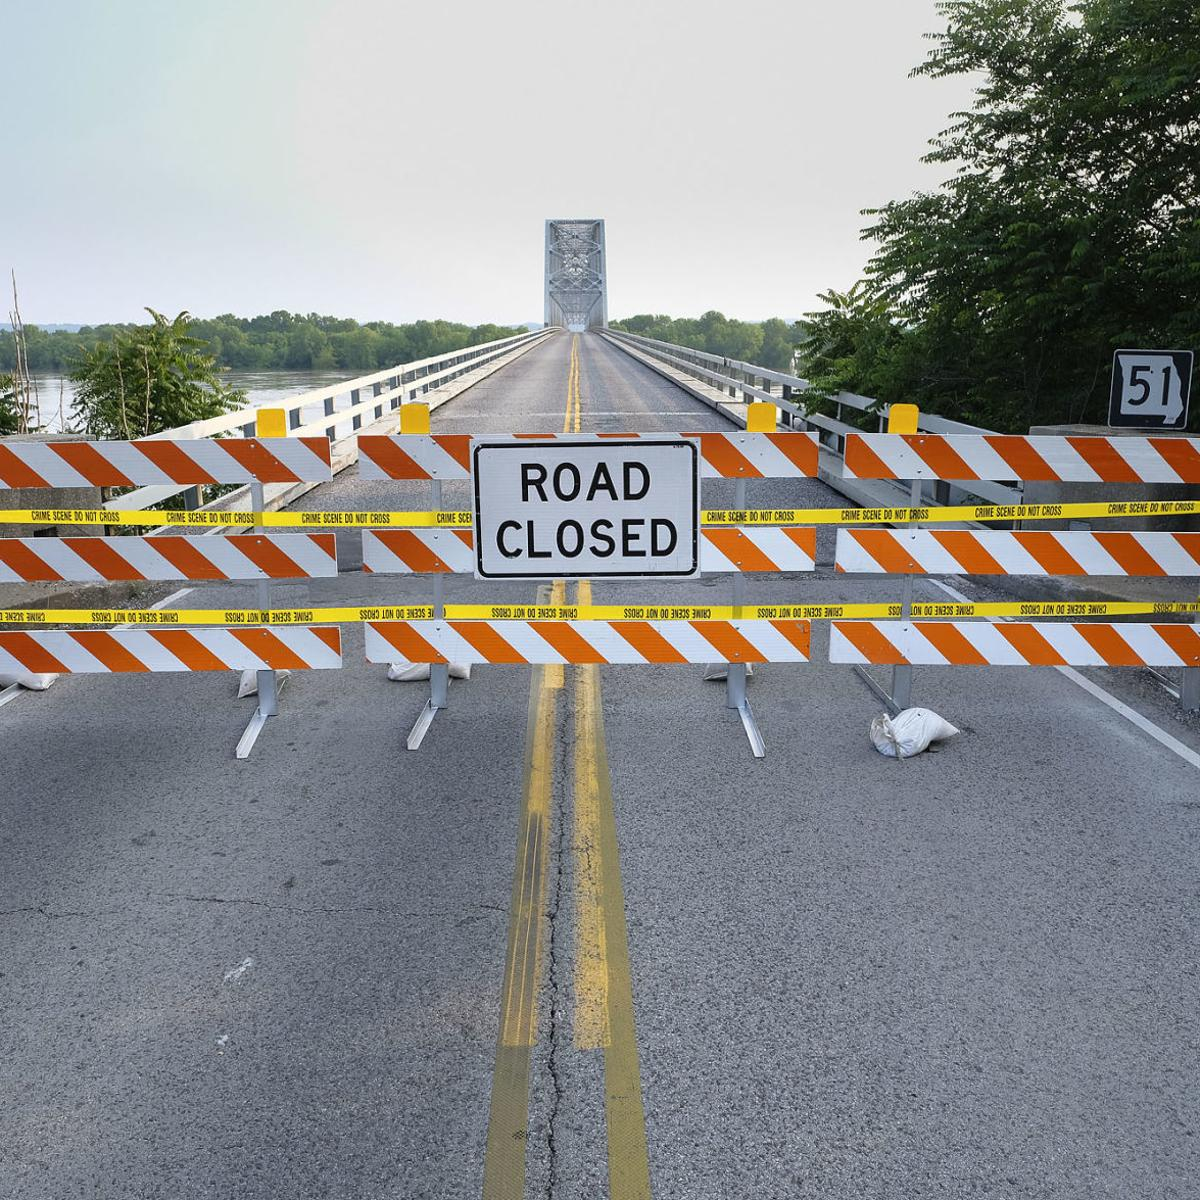 Road closures continue in Southern Illinois as floodwaters